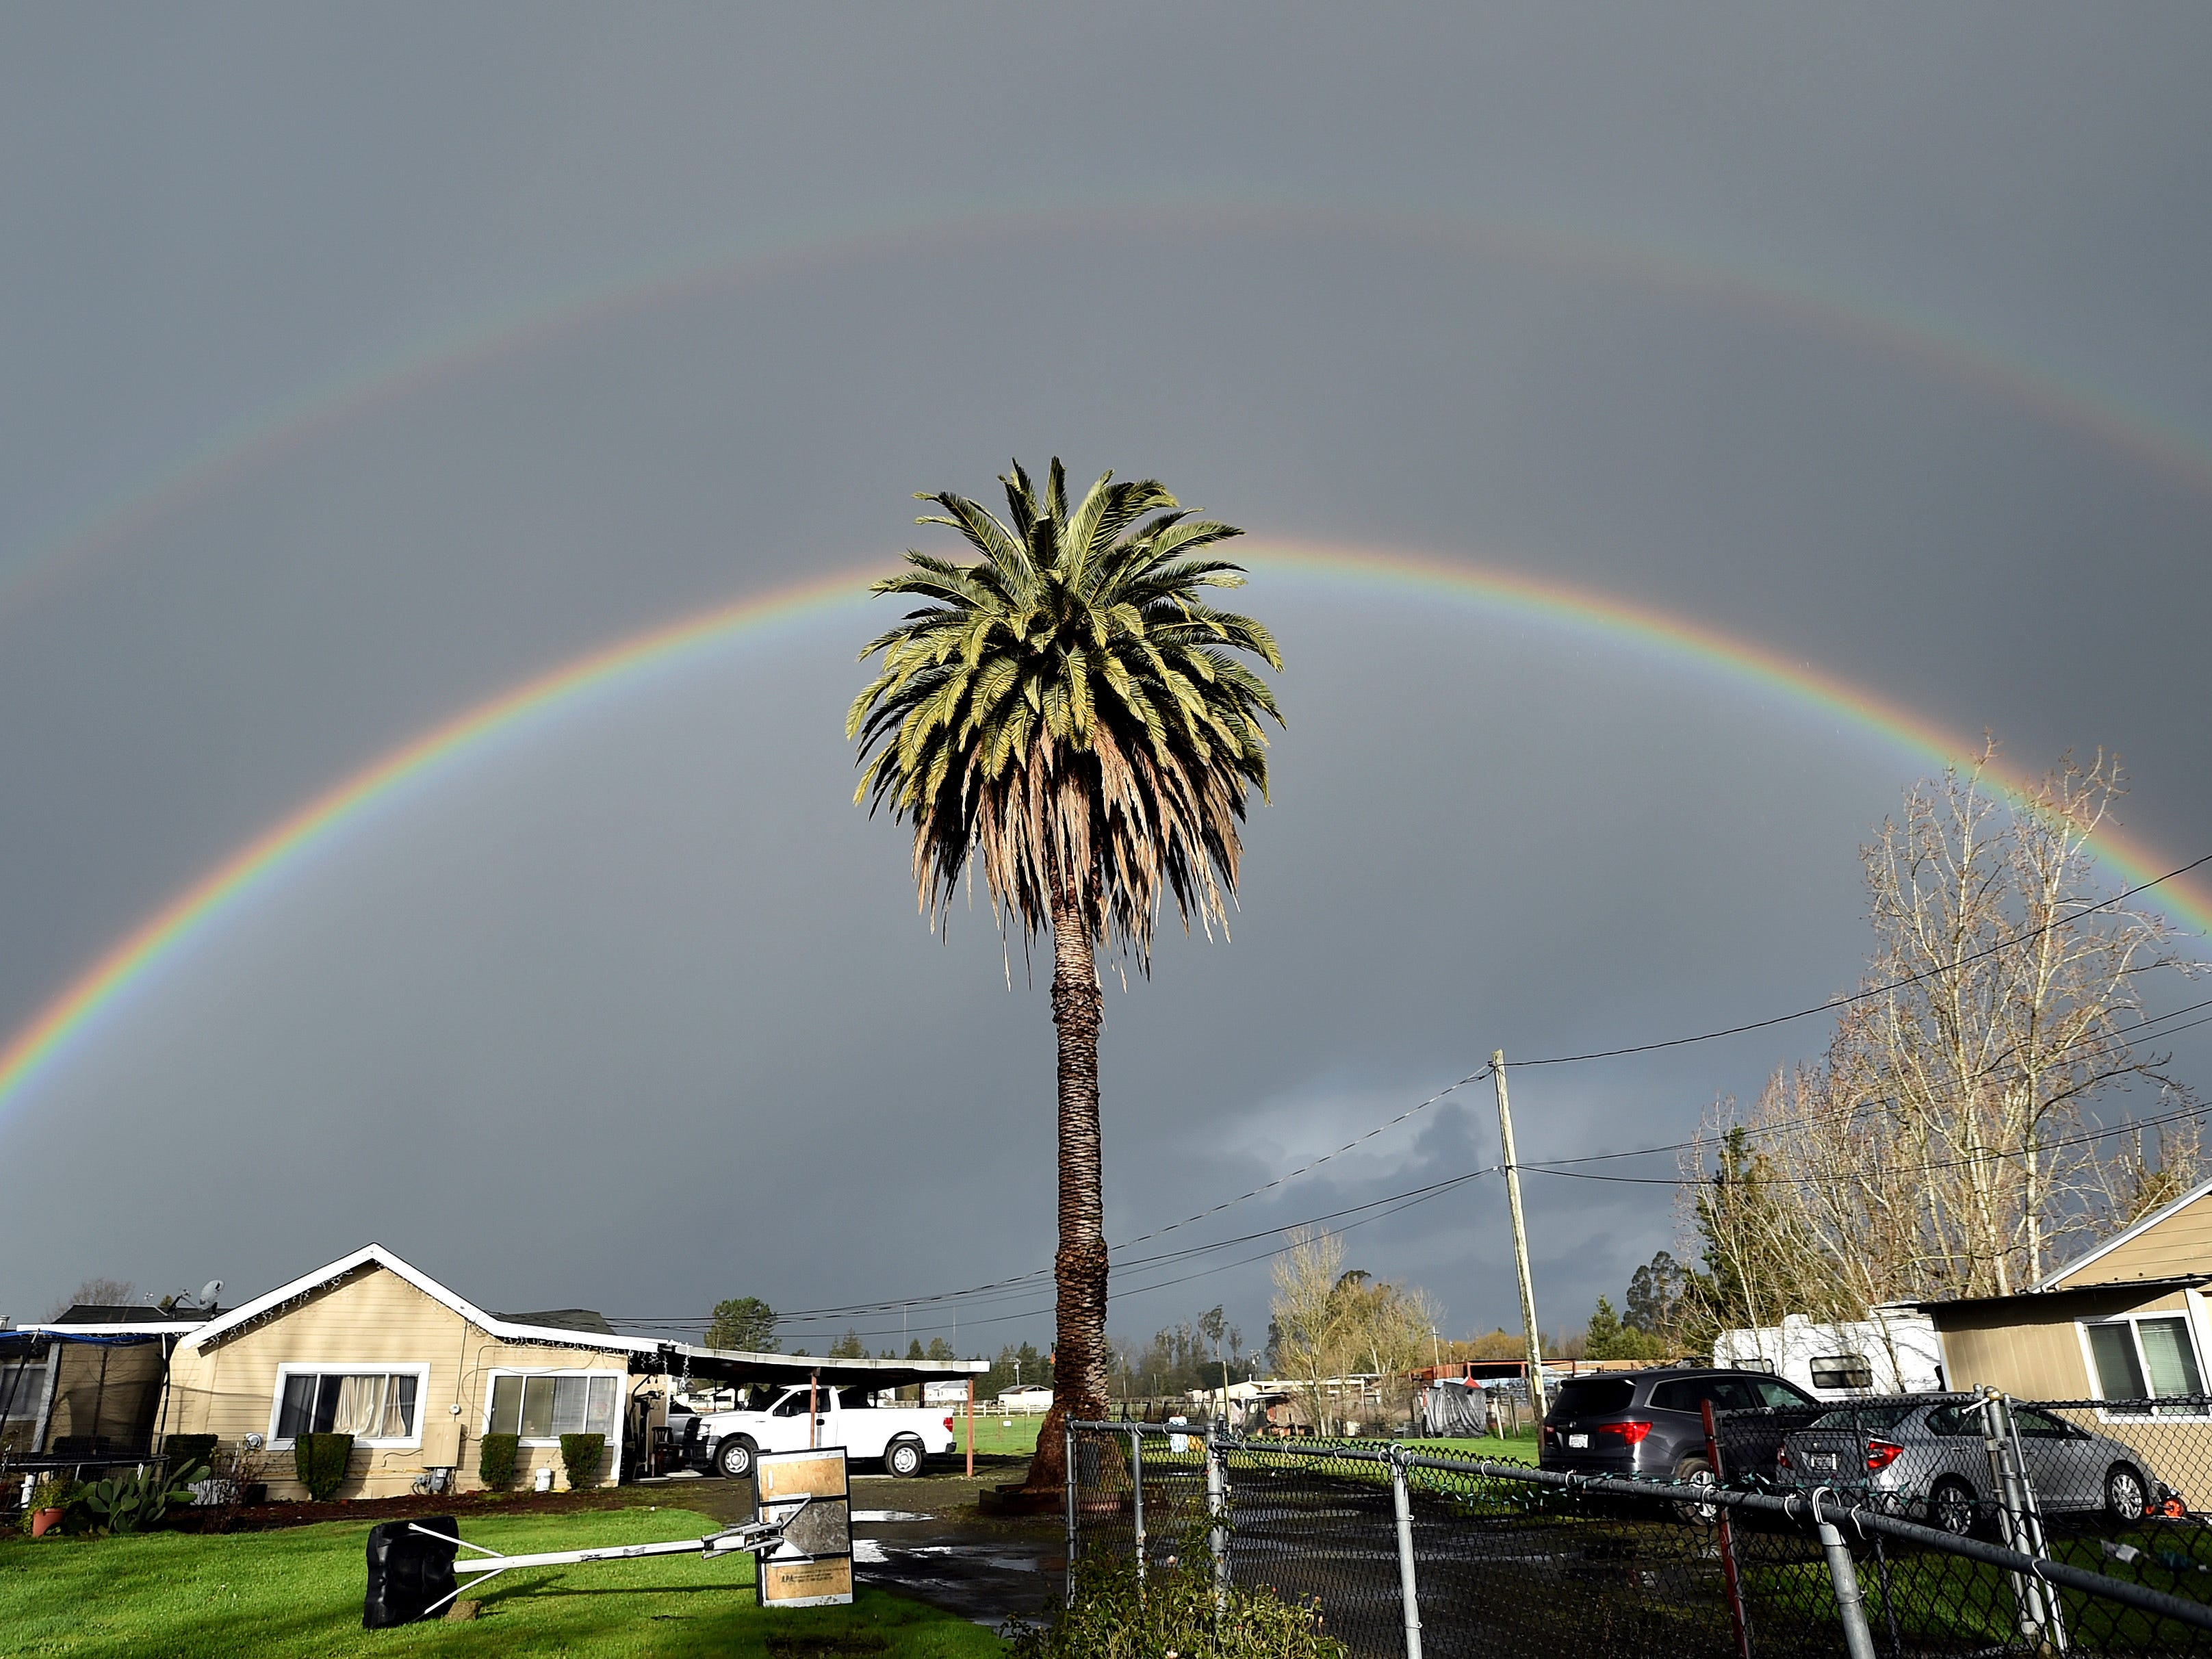 A double rainbow arcs over a palm tree in Santa Rosa, Calif., on Friday, Feb. 15, 2019. In California, rainwater continued to drain from saturated landscapes even as a new system moved into northern areas of the state and more heavy snow fell in the Sierra Nevada.